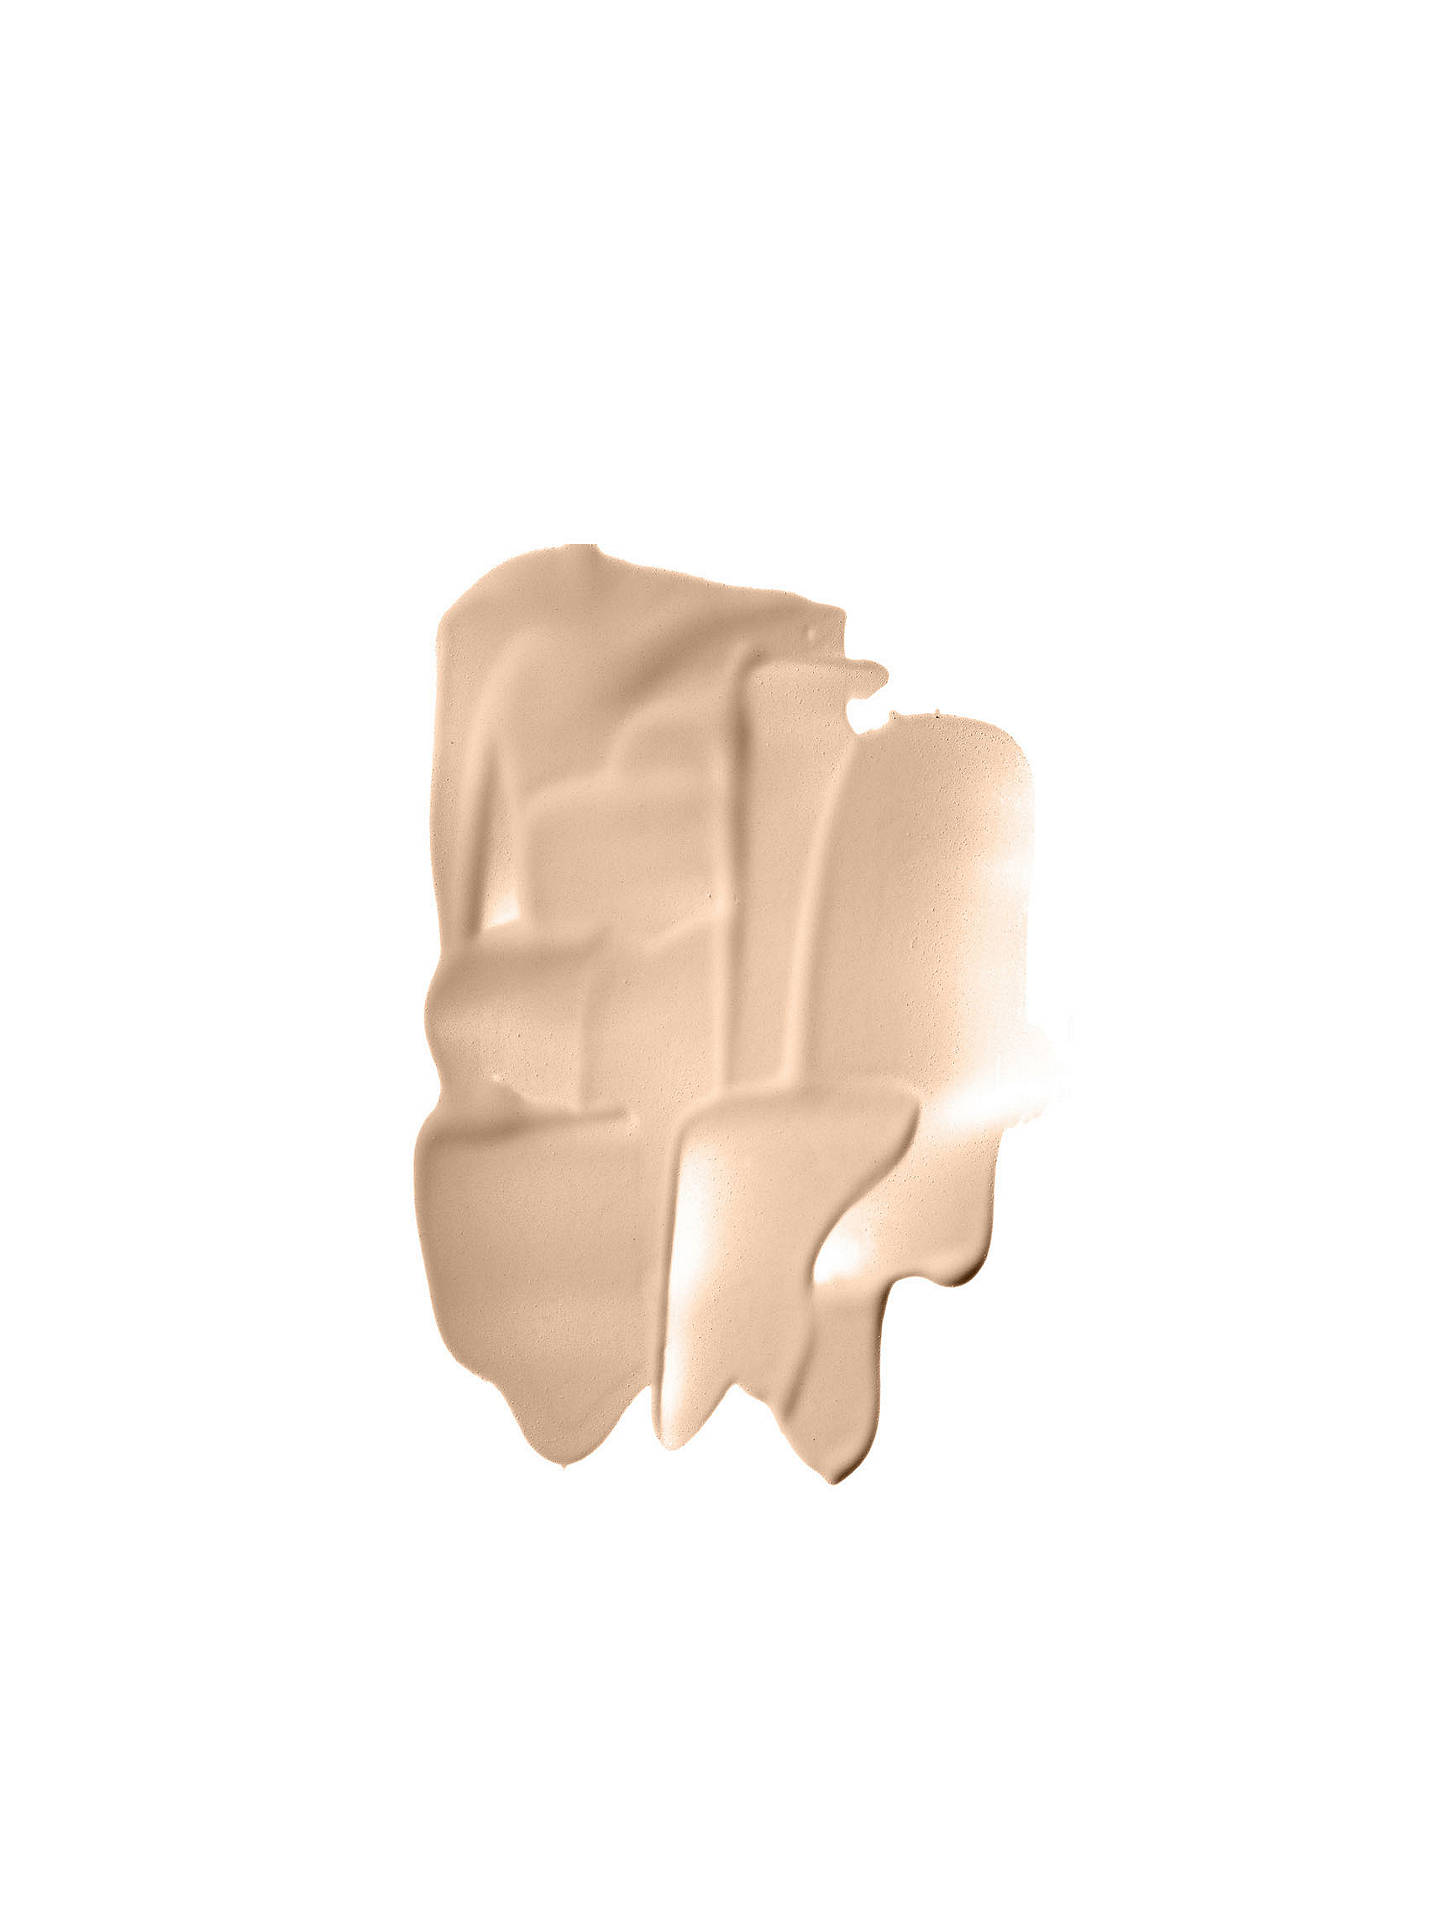 BuyMAC Face/Body Foundation, C1 Online at johnlewis.com